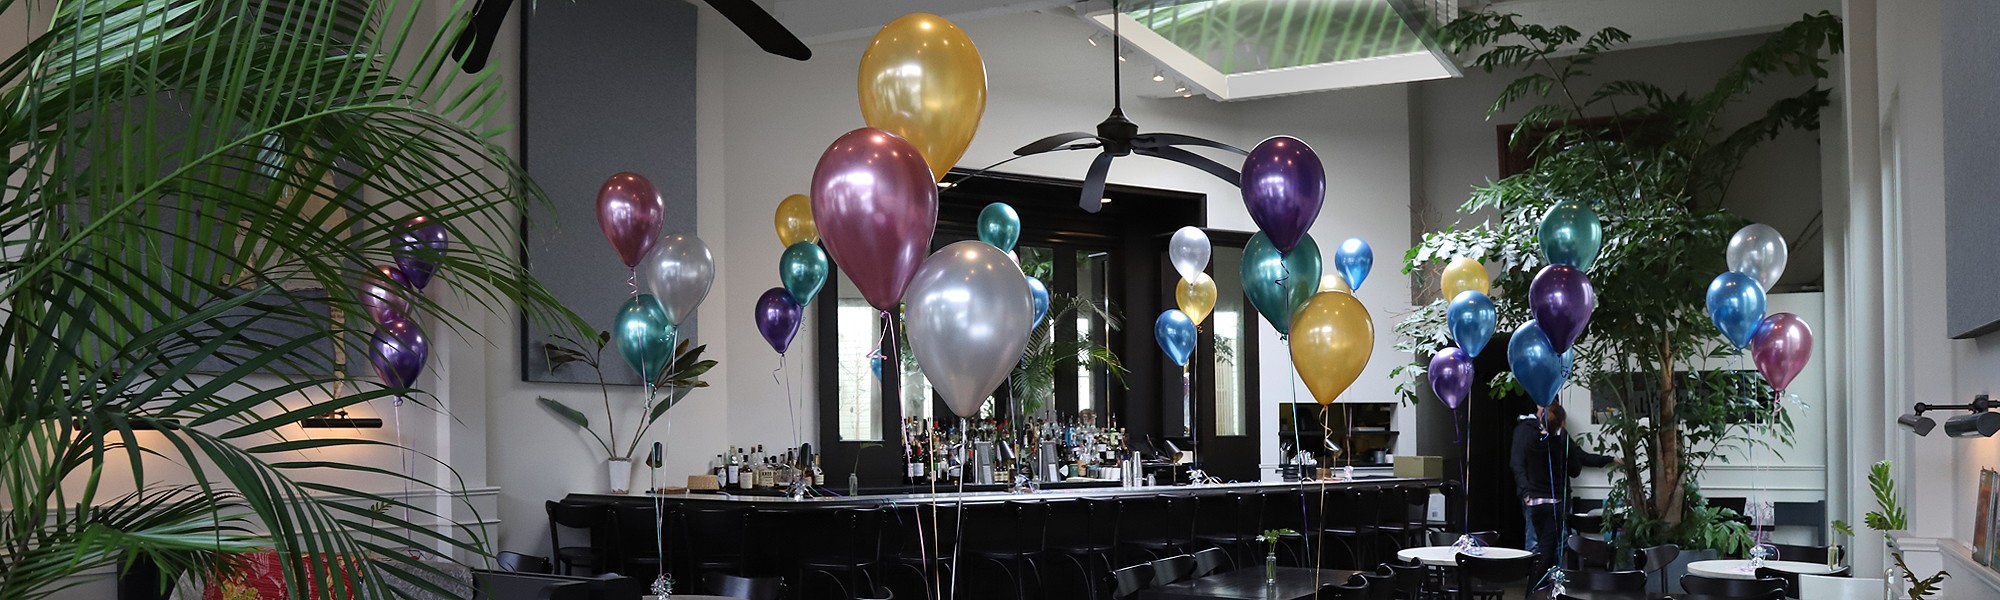 Centerpieces - Helium - Professionally Arranged and Hand Delivered by BalloonPlanet.com